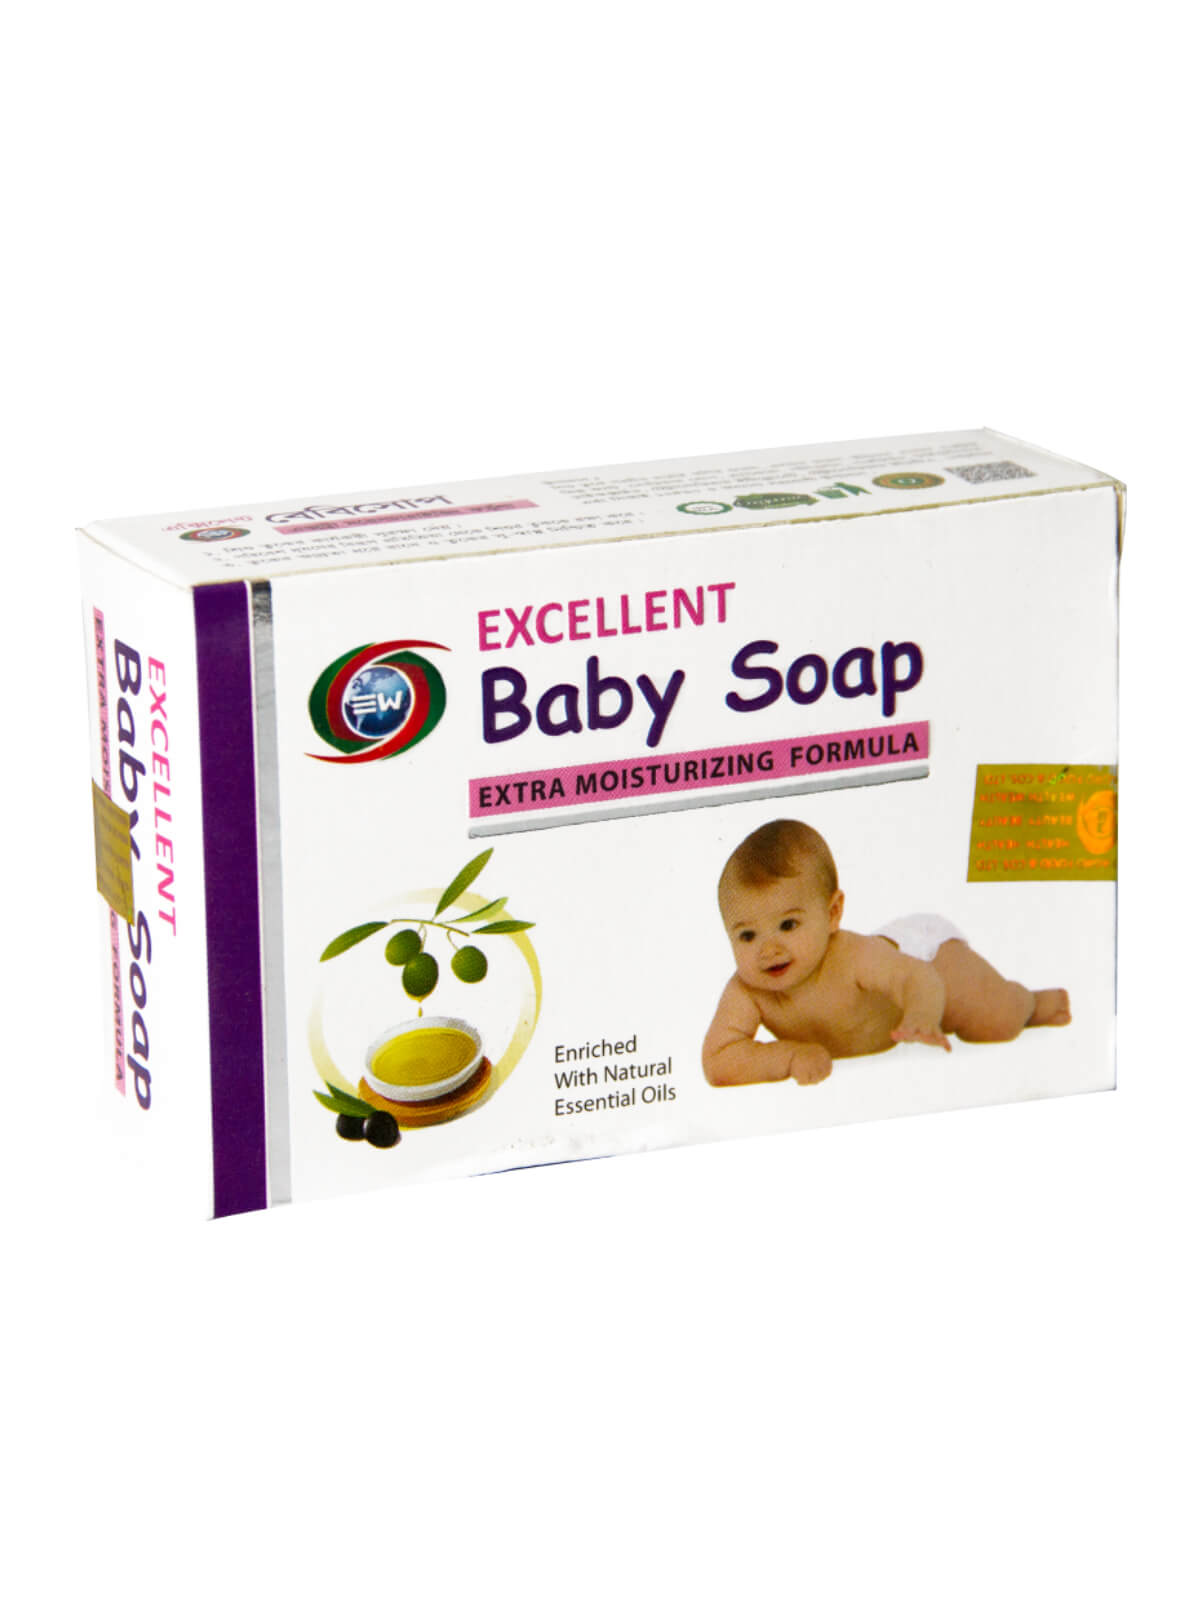 Baby Soap with Extra Moisturizing Formula